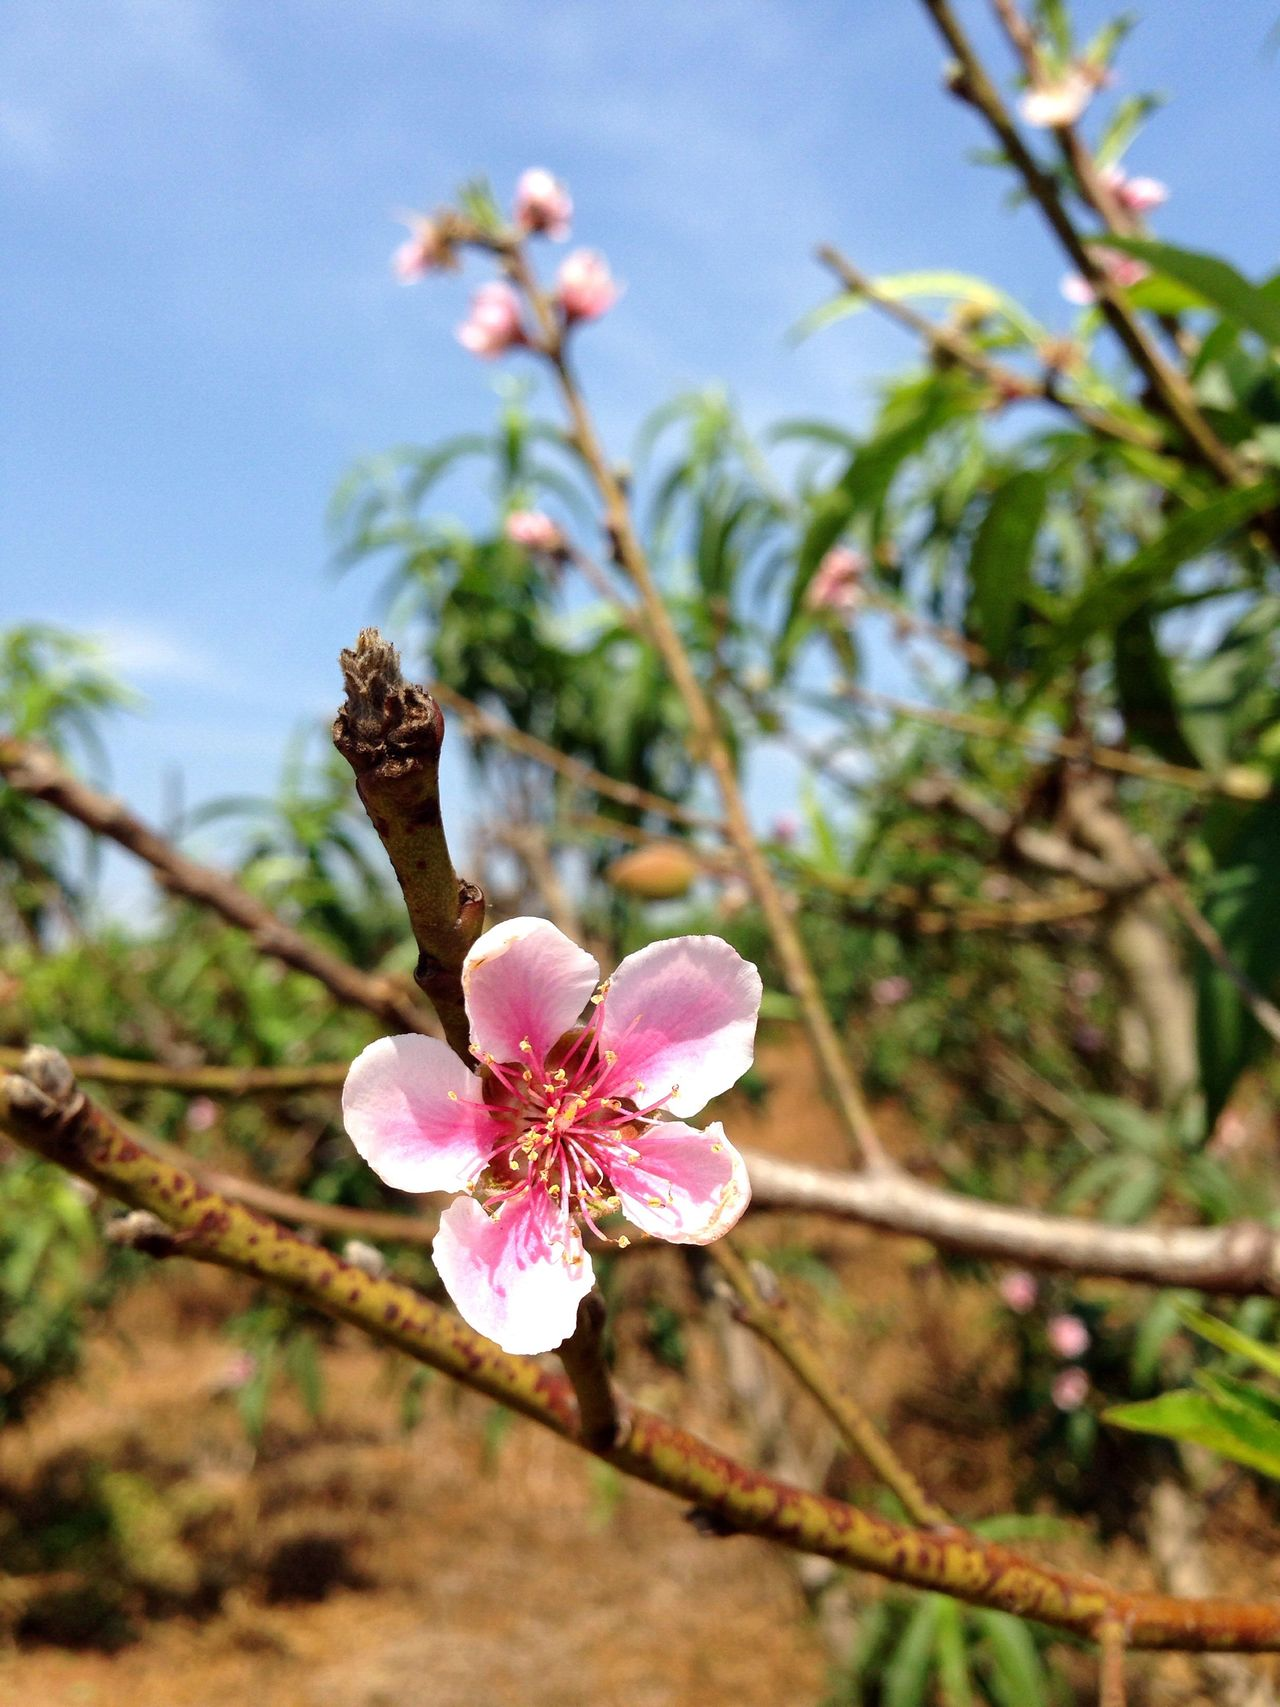 Peach blossom / flor de pêssego Flower Nature Pink Color Beauty In Nature Peach Blossom Flor Pêssego Nature Natureza